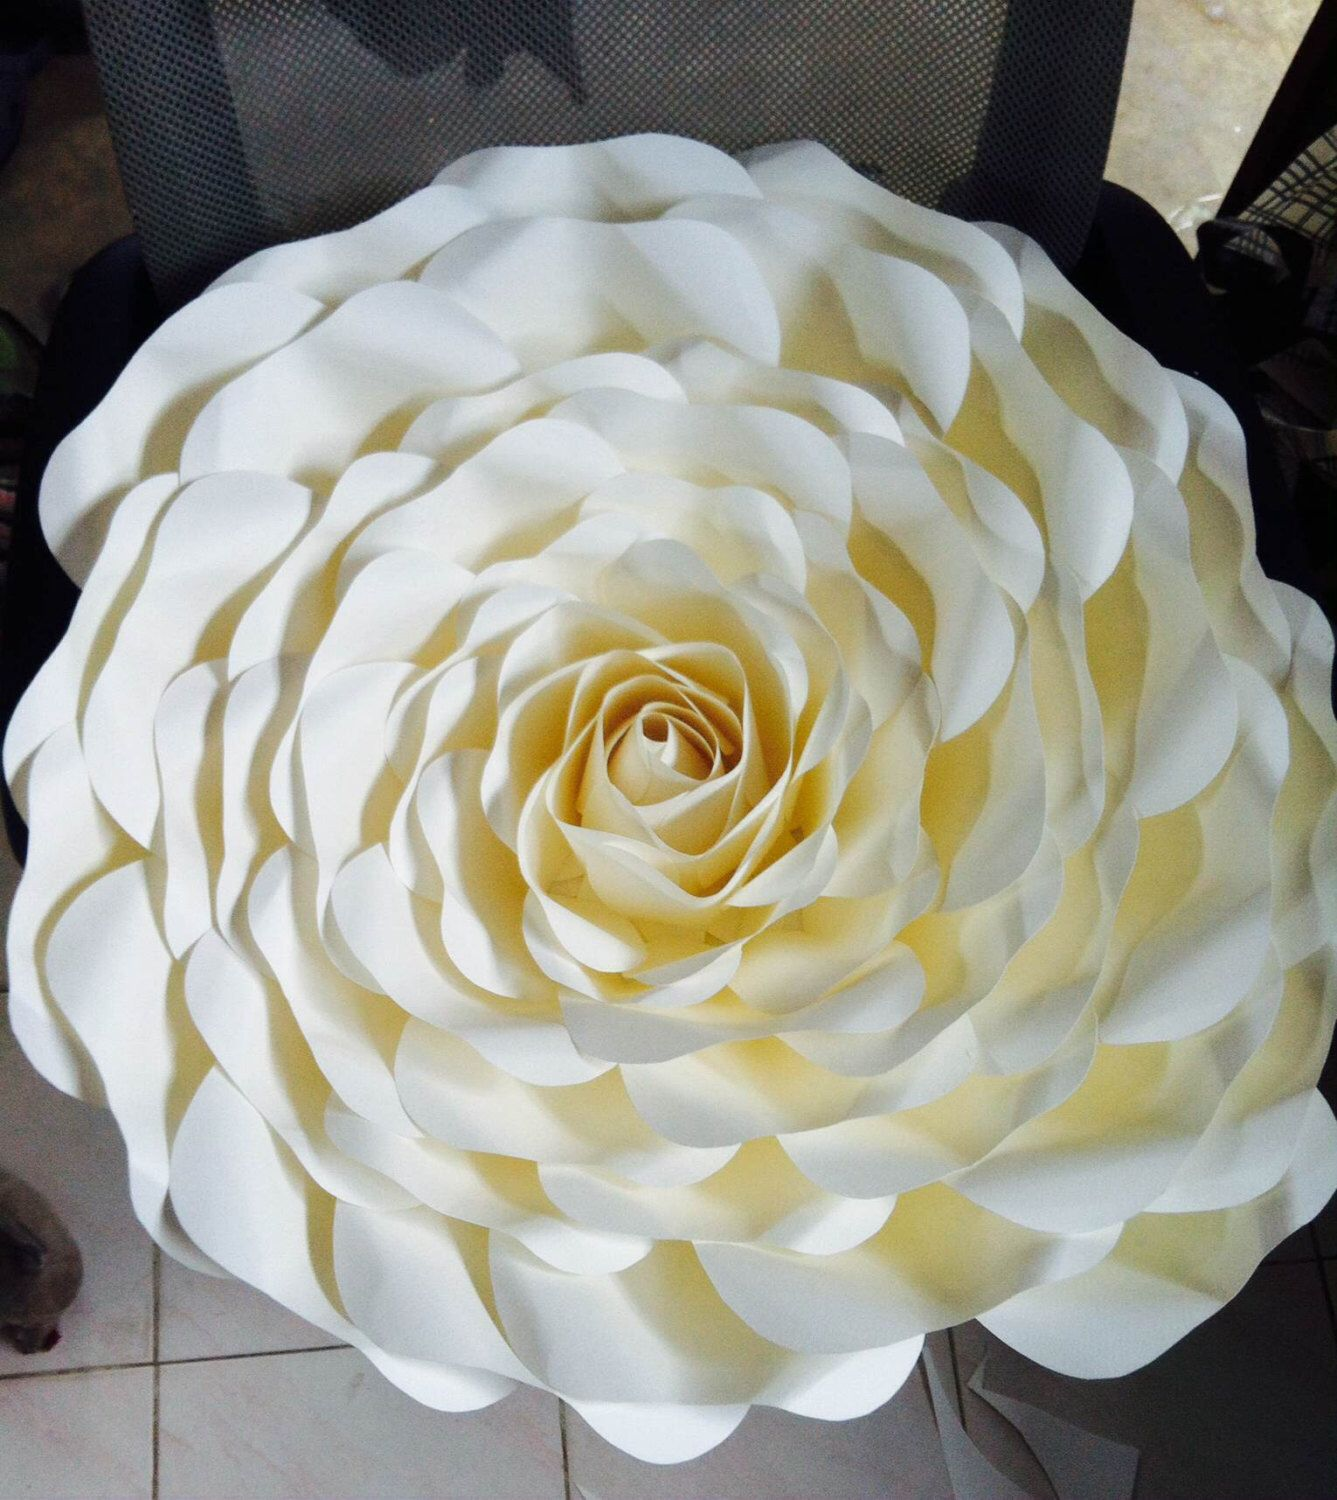 Huge Paper Flower For Placement On A Wall By Maneepaperart On Etsy